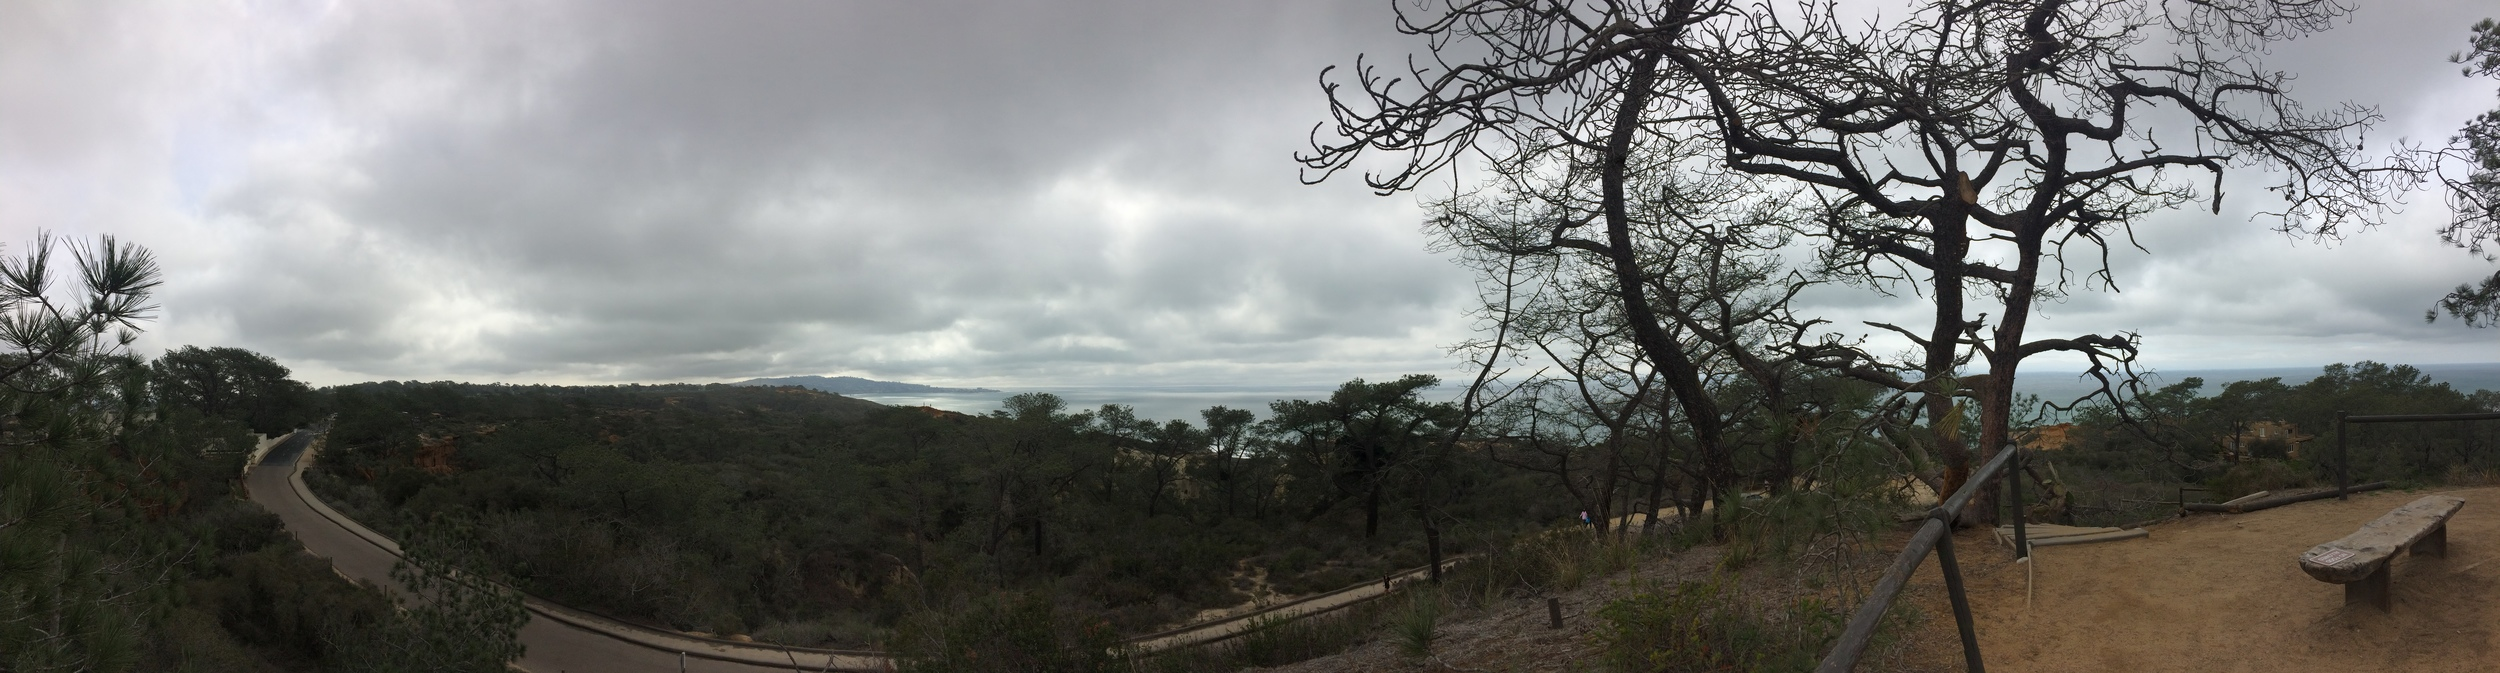 High Point Overlook, Torrey Pines State Reserve